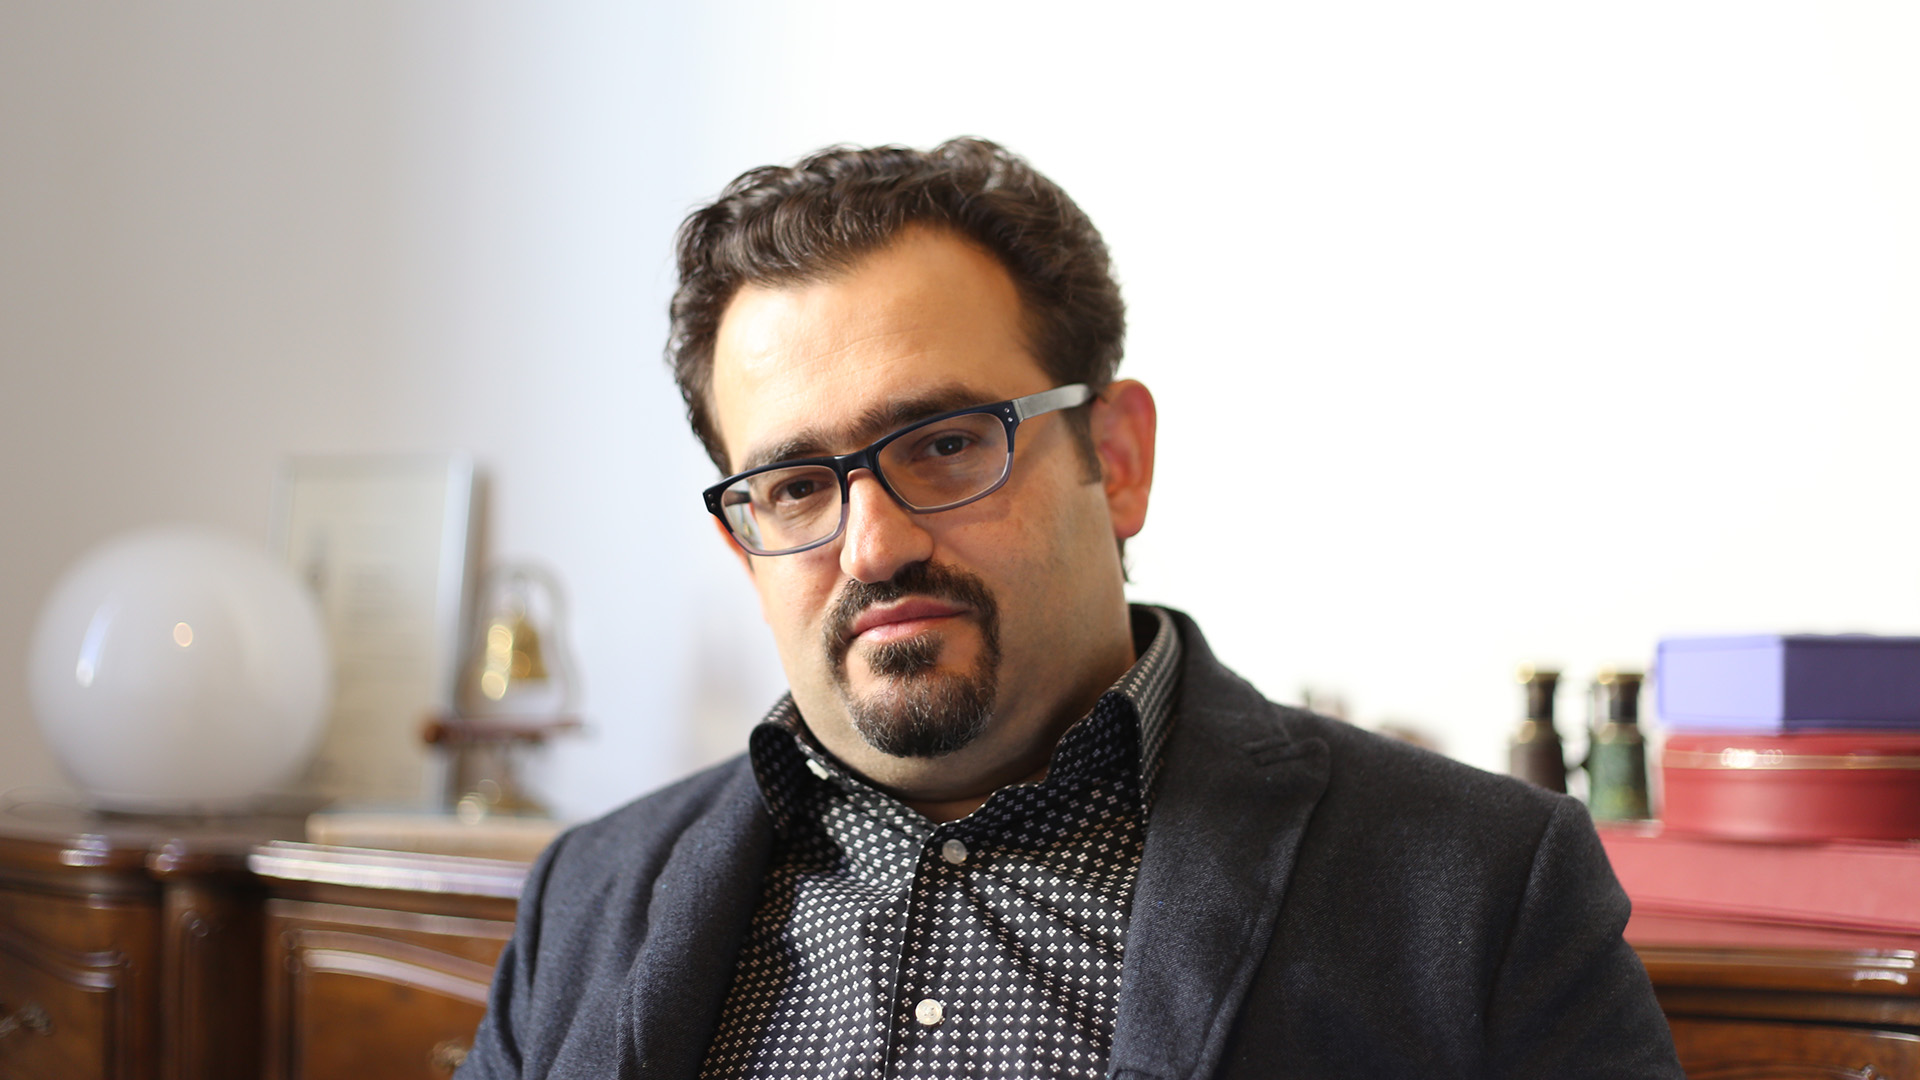 Interview with Naseef Naeem on constitutions in the Arab world